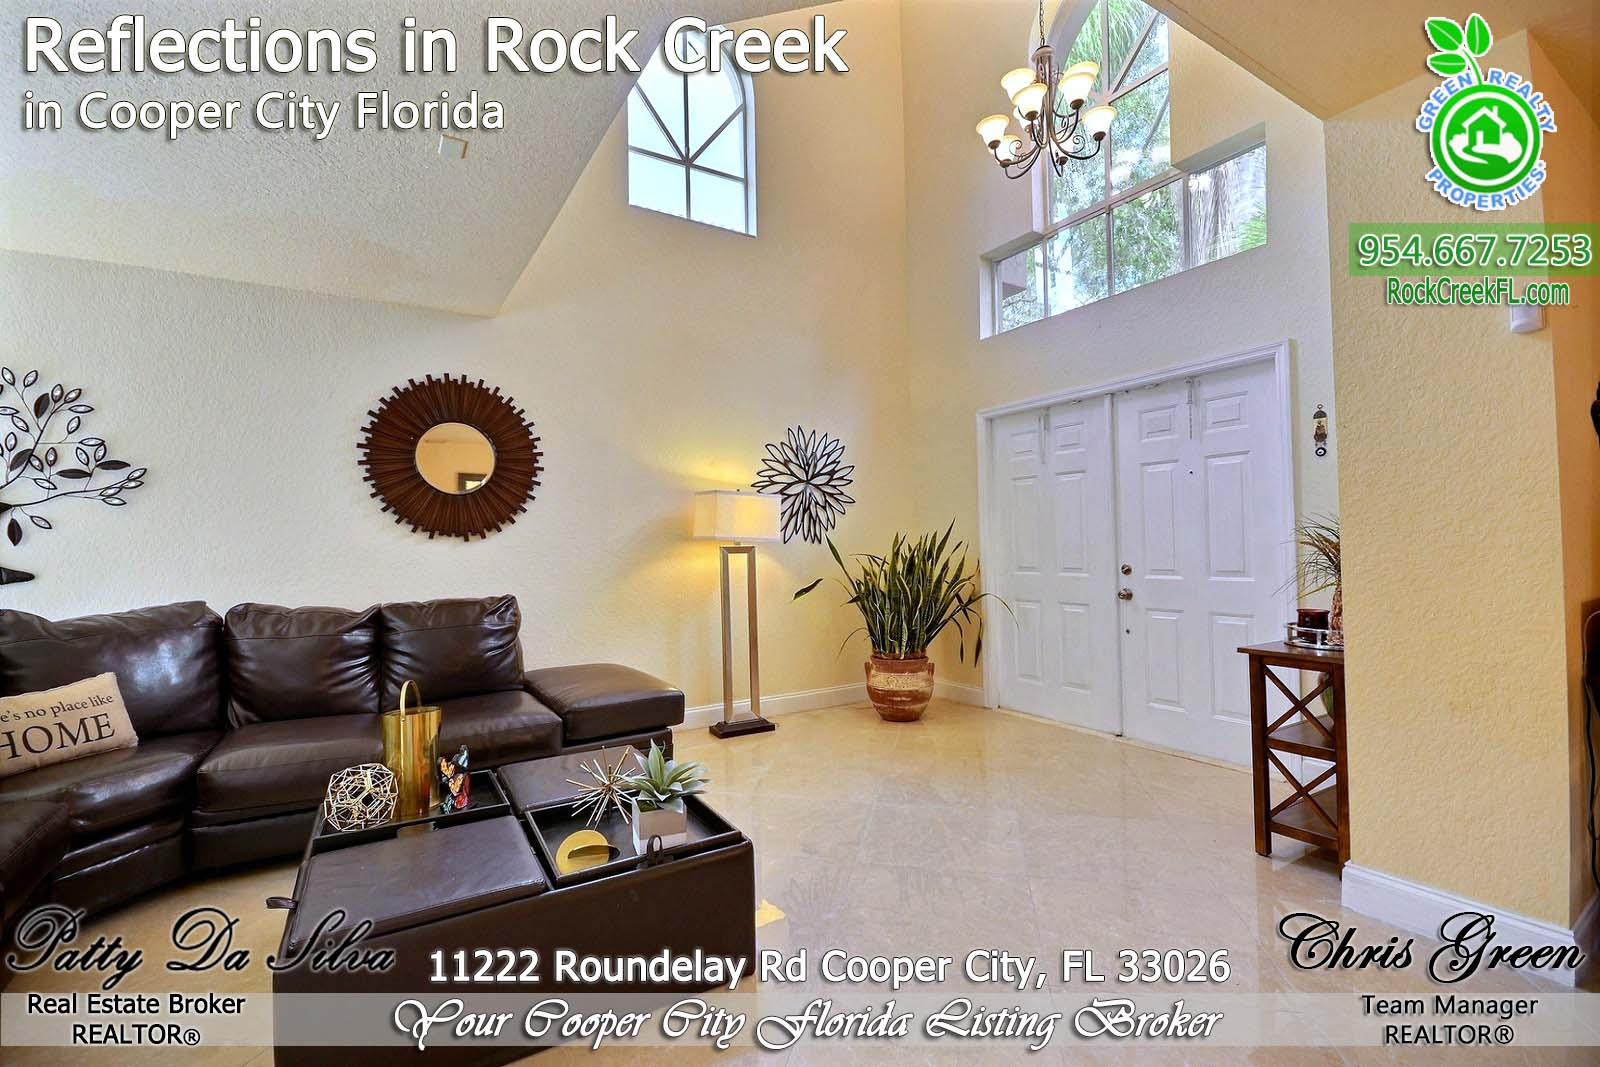 Cooper City Homes For Sale - Reflections in Rock Creek Homes Fo Sale (24)